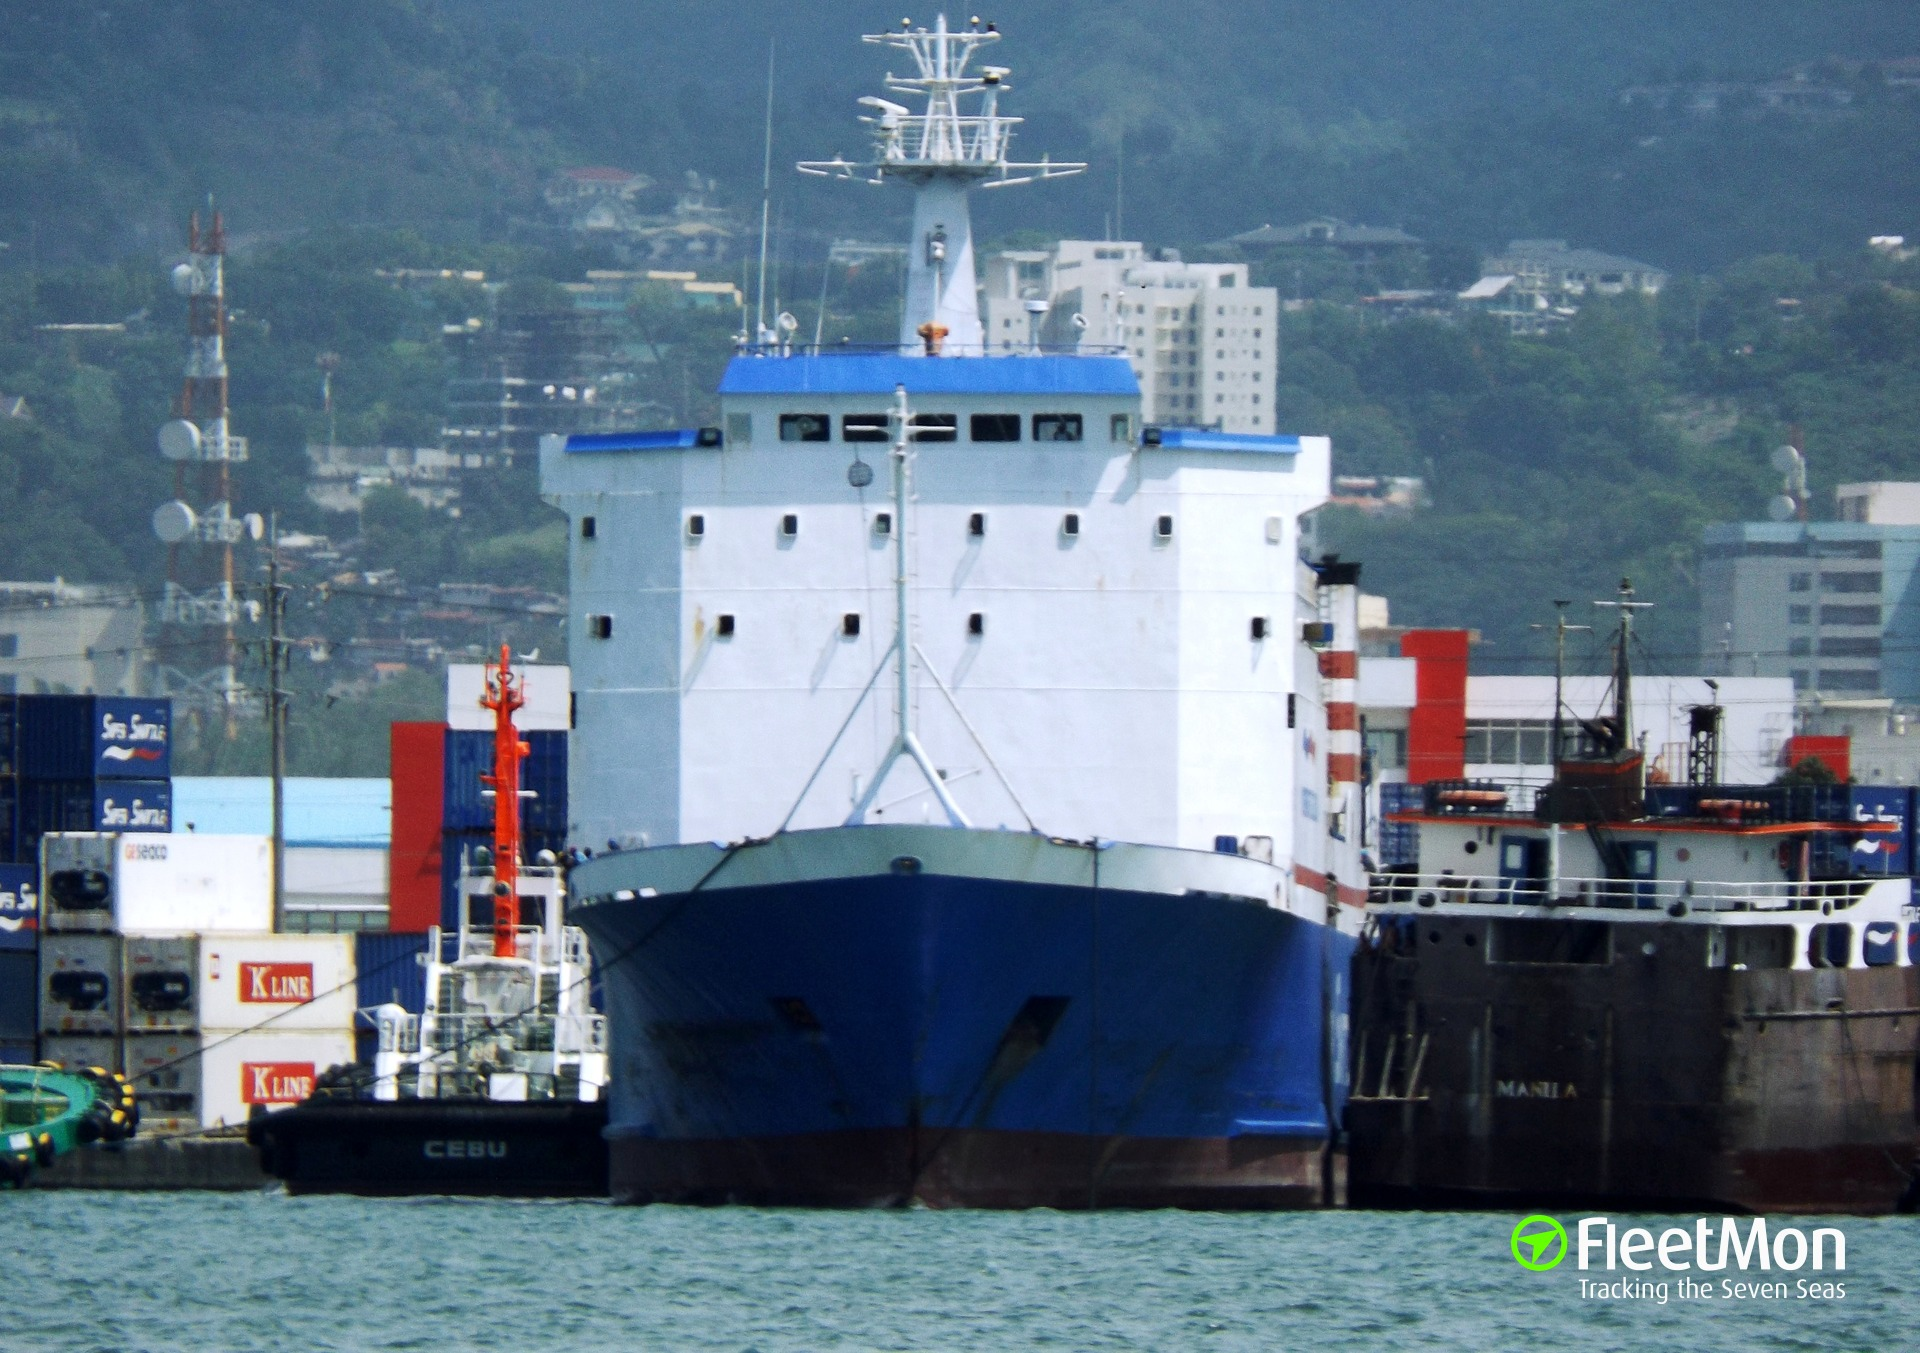 Ferry Super Shuttle Roro 5 aground in Batangas Bay, Philippines